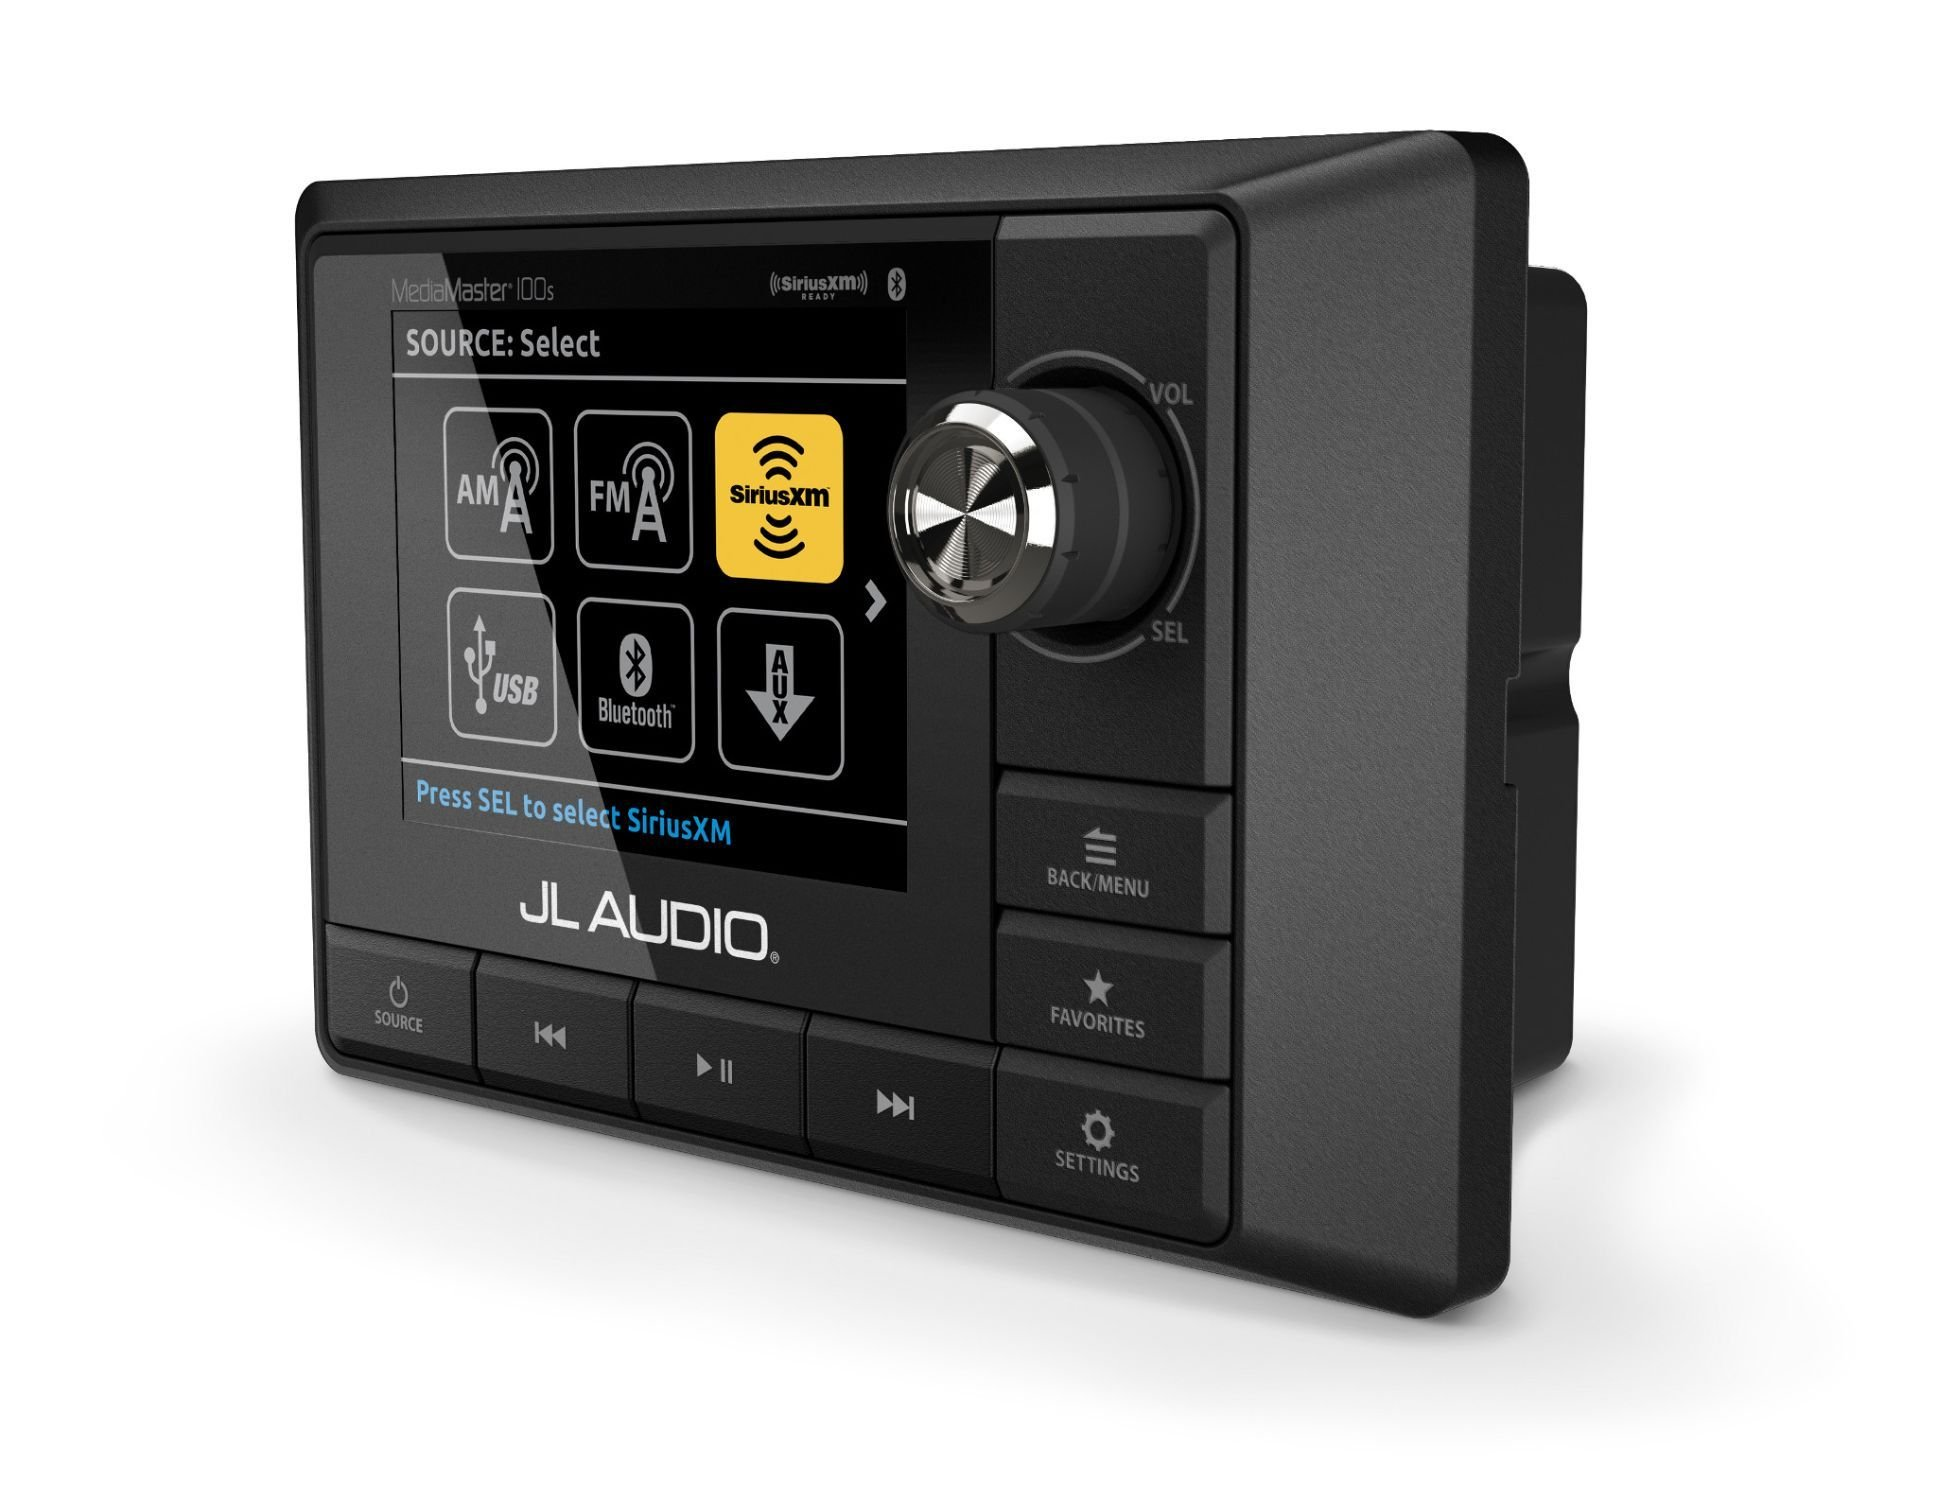 JL MM100s with Full-Color LCD Display- Weatherproof Source Unit